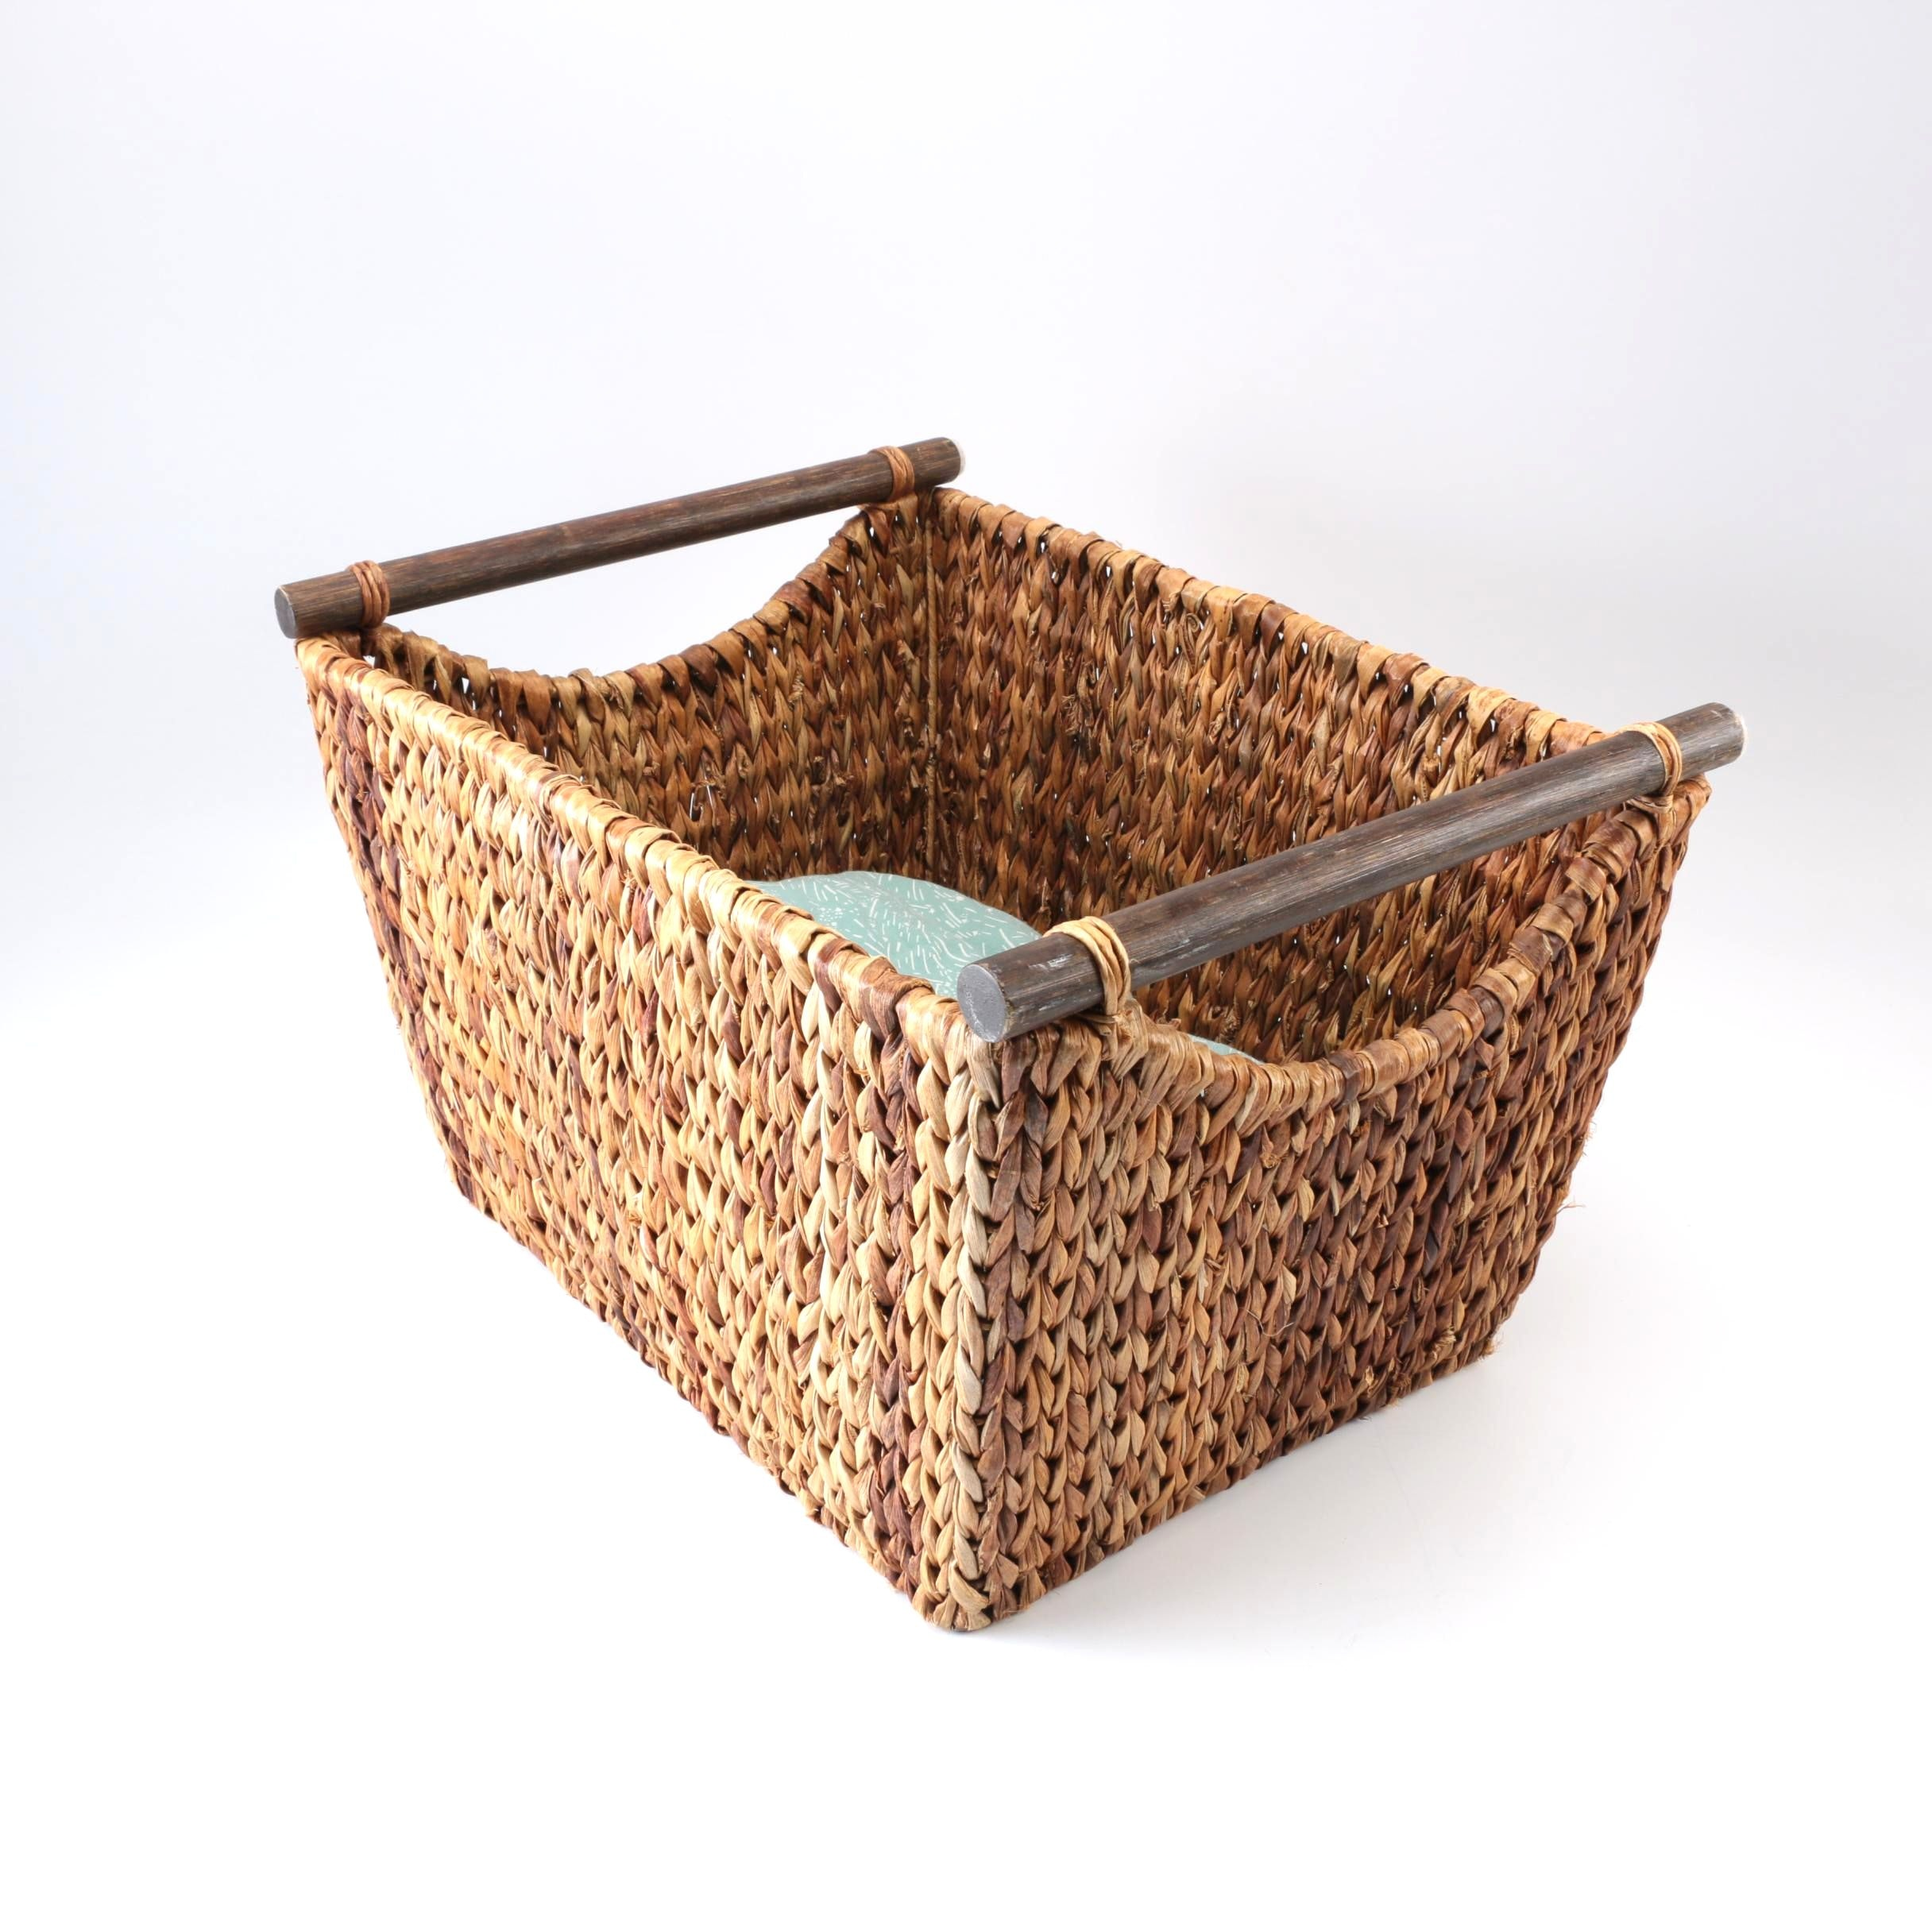 Woven Basket and Blanket